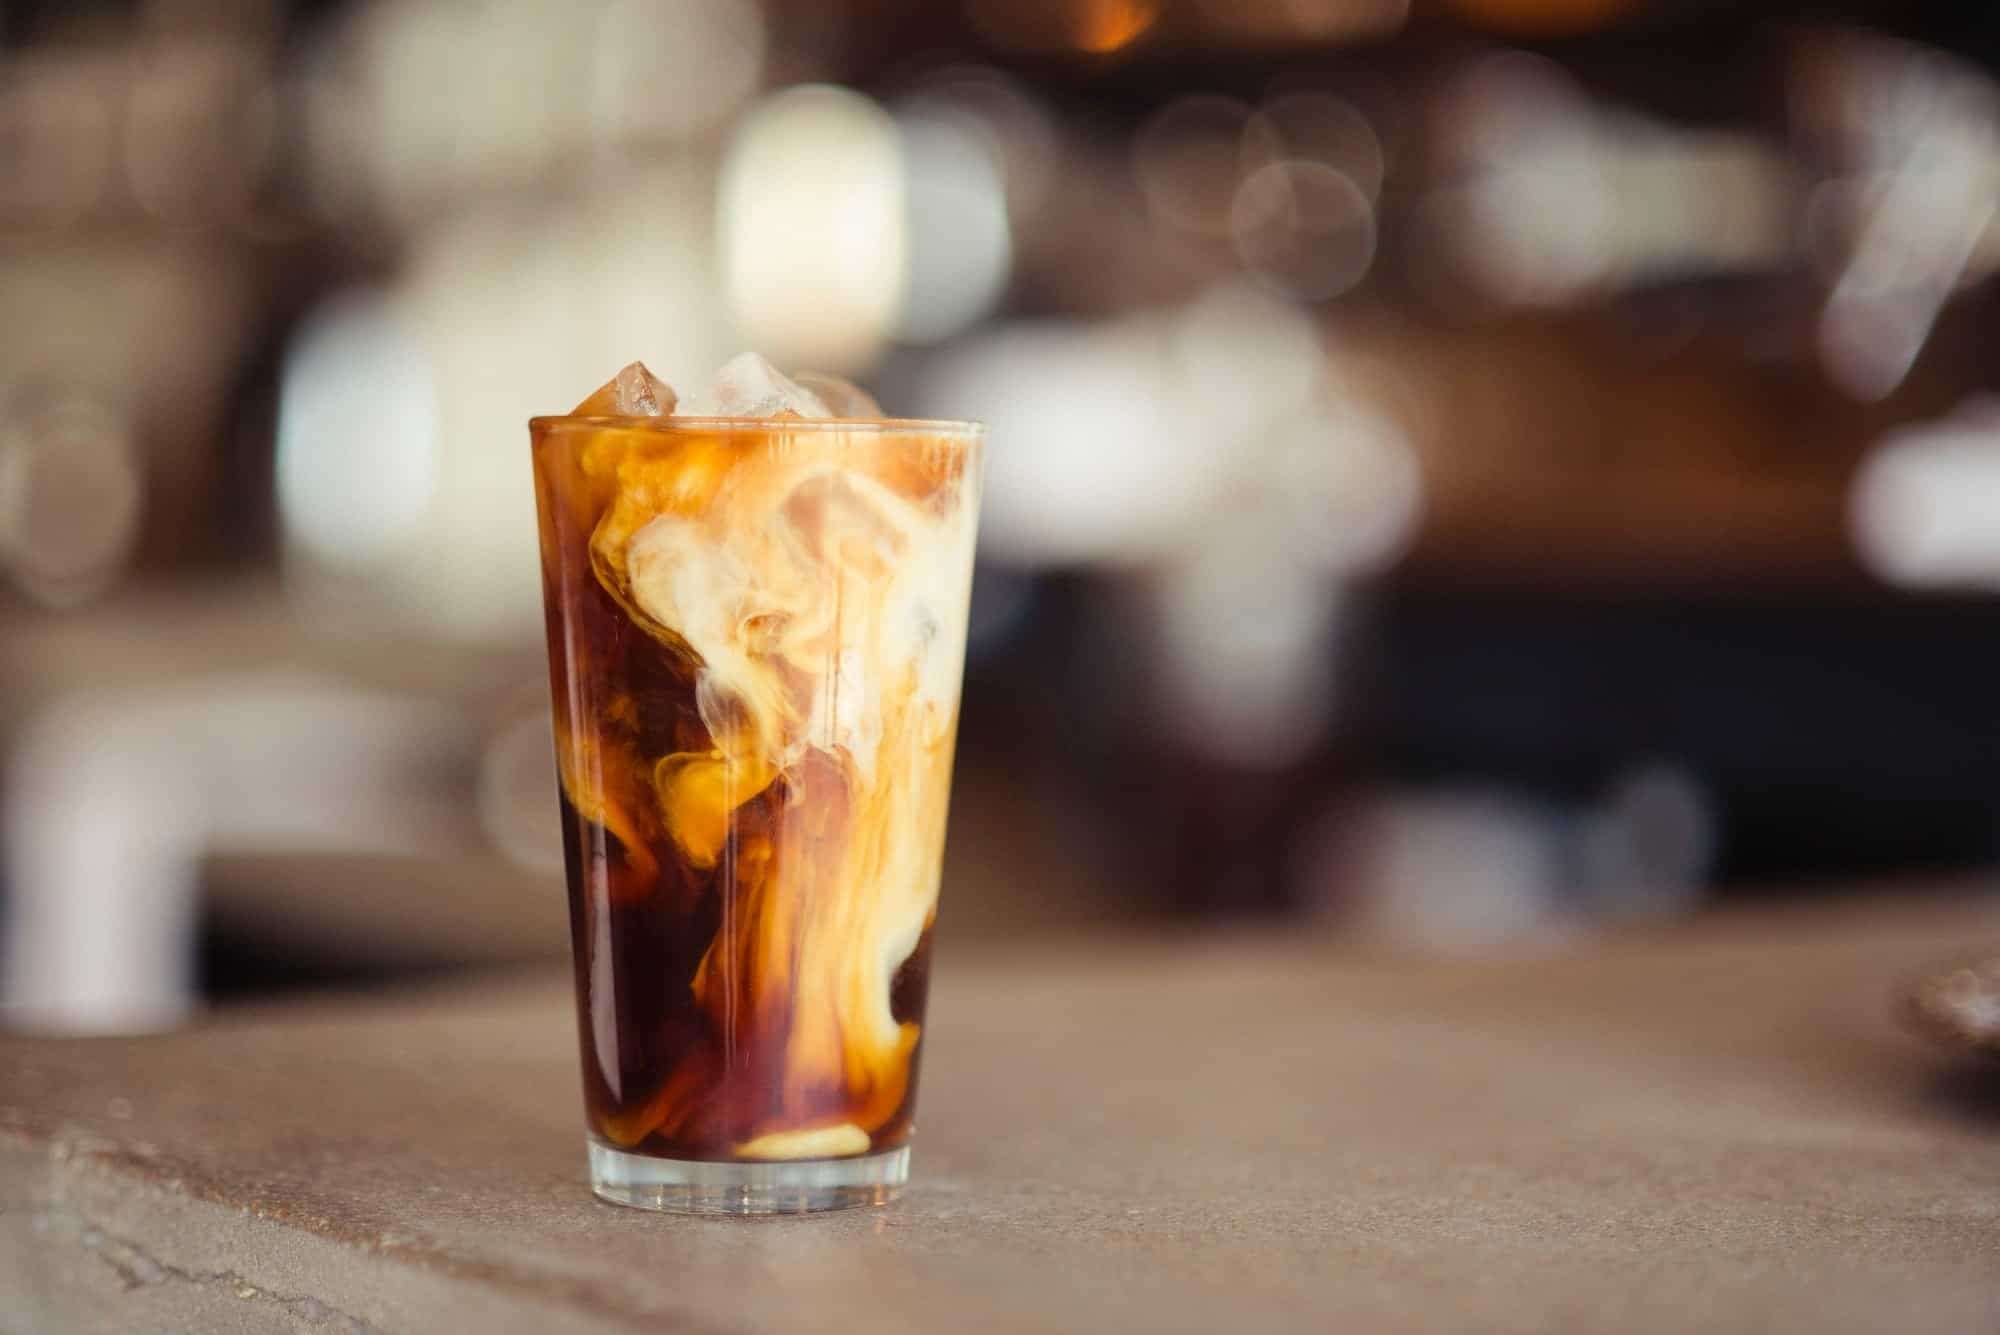 A tall glass of iced coffee